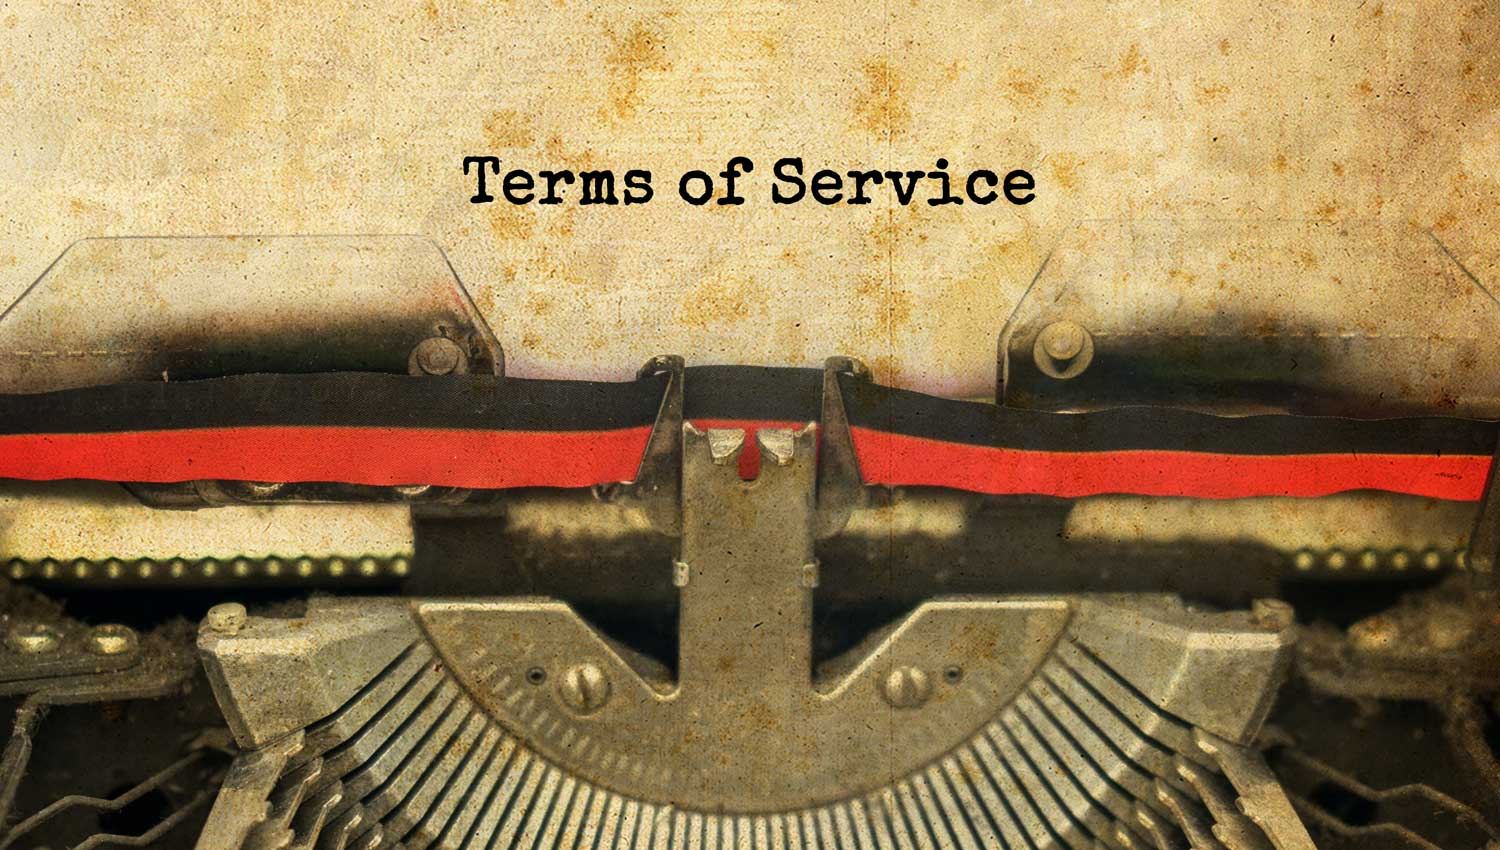 EnemiesWithinMovie Terms of Service